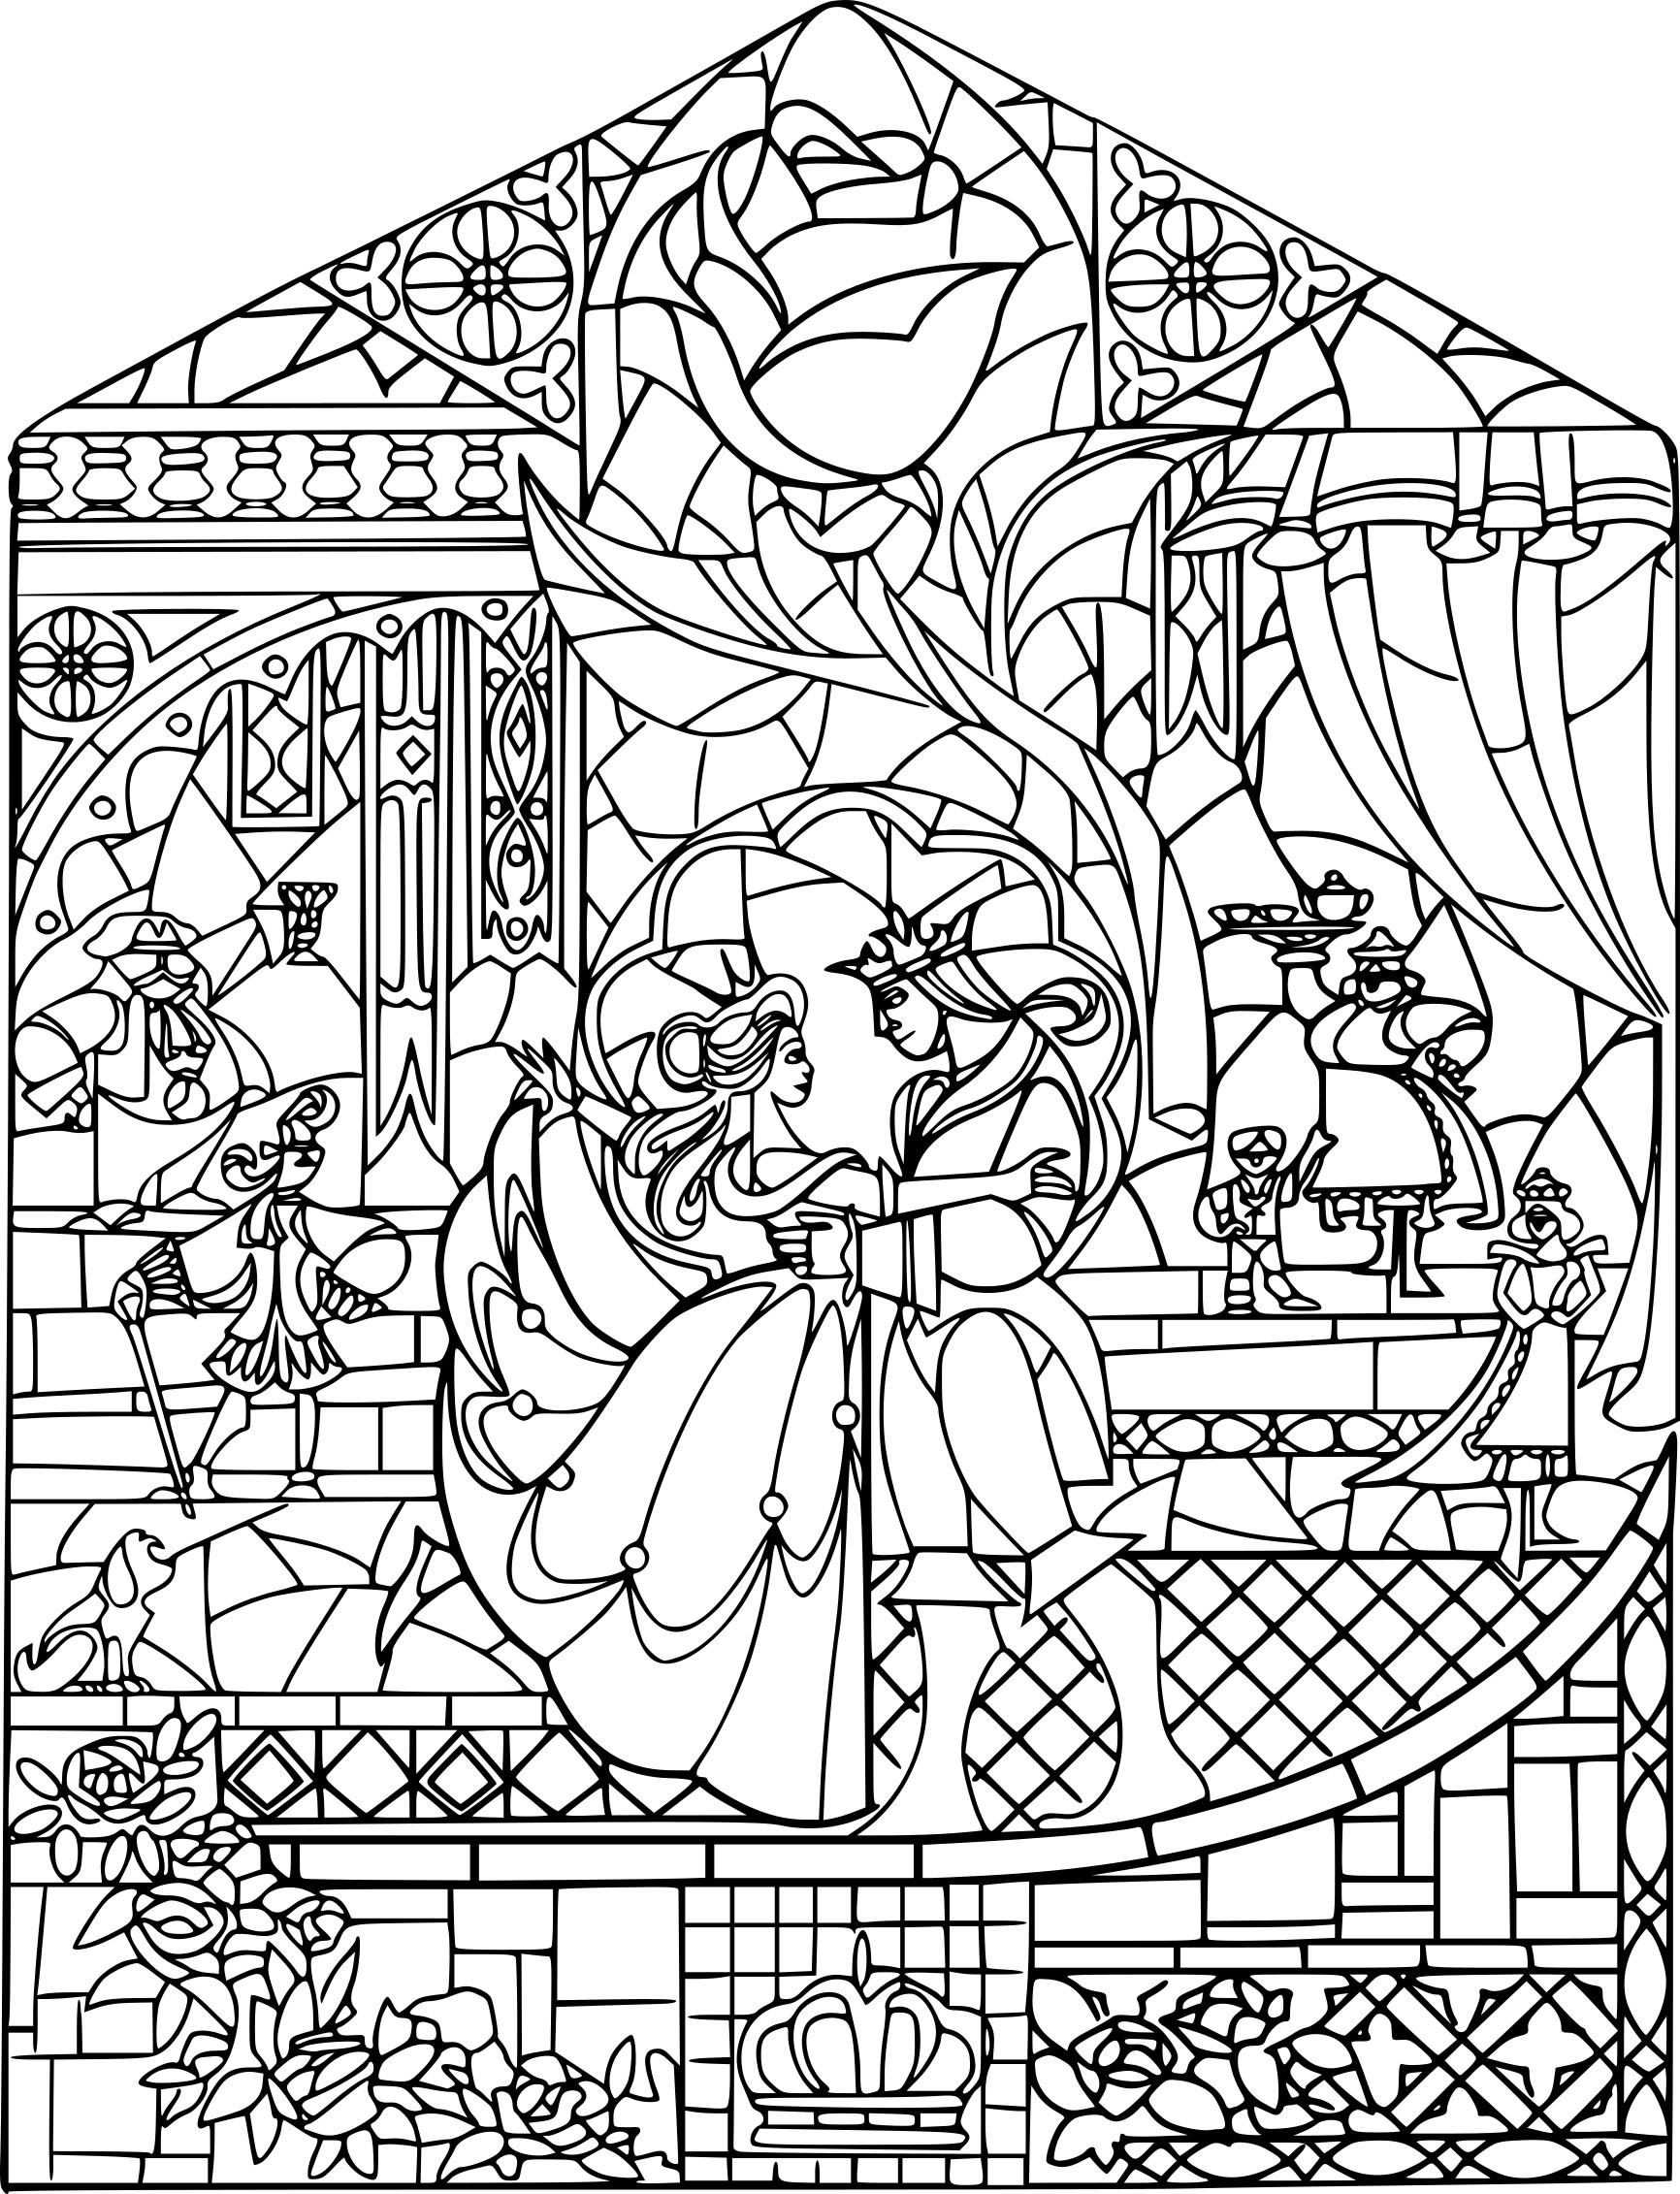 Coloriage disney adulte imprimer sur coloriages info - Dessin a colorier adulte ...